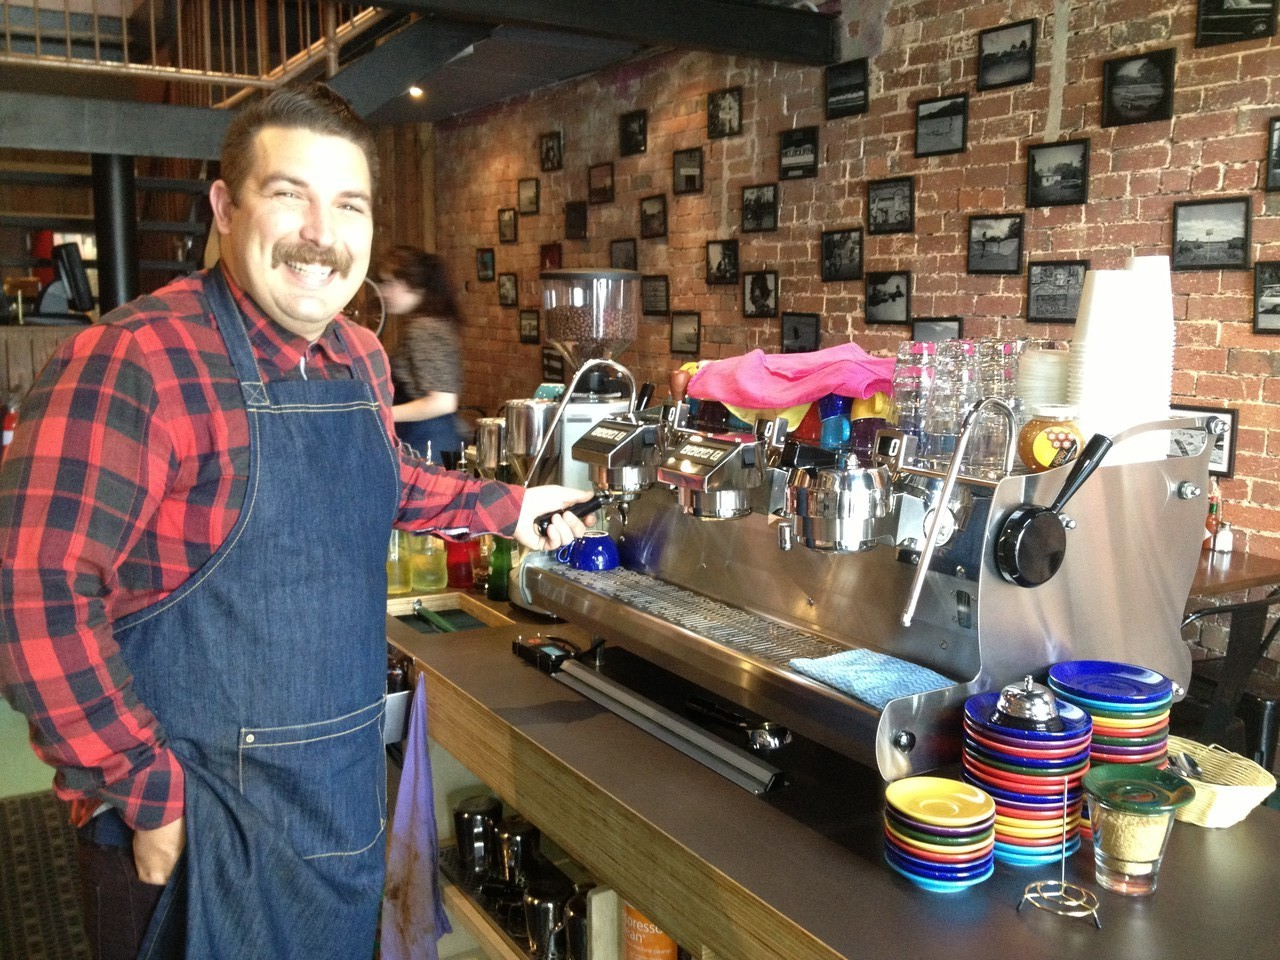 Nipped out for a coffee at a new place called Neanderthal - just opened. The owner Dax (pictured) has fulfilled his dream by buying a $20K coffee machine … and what a machine it is! Powered by car-engined power motors, reservoirs, the lot. I'll be back he